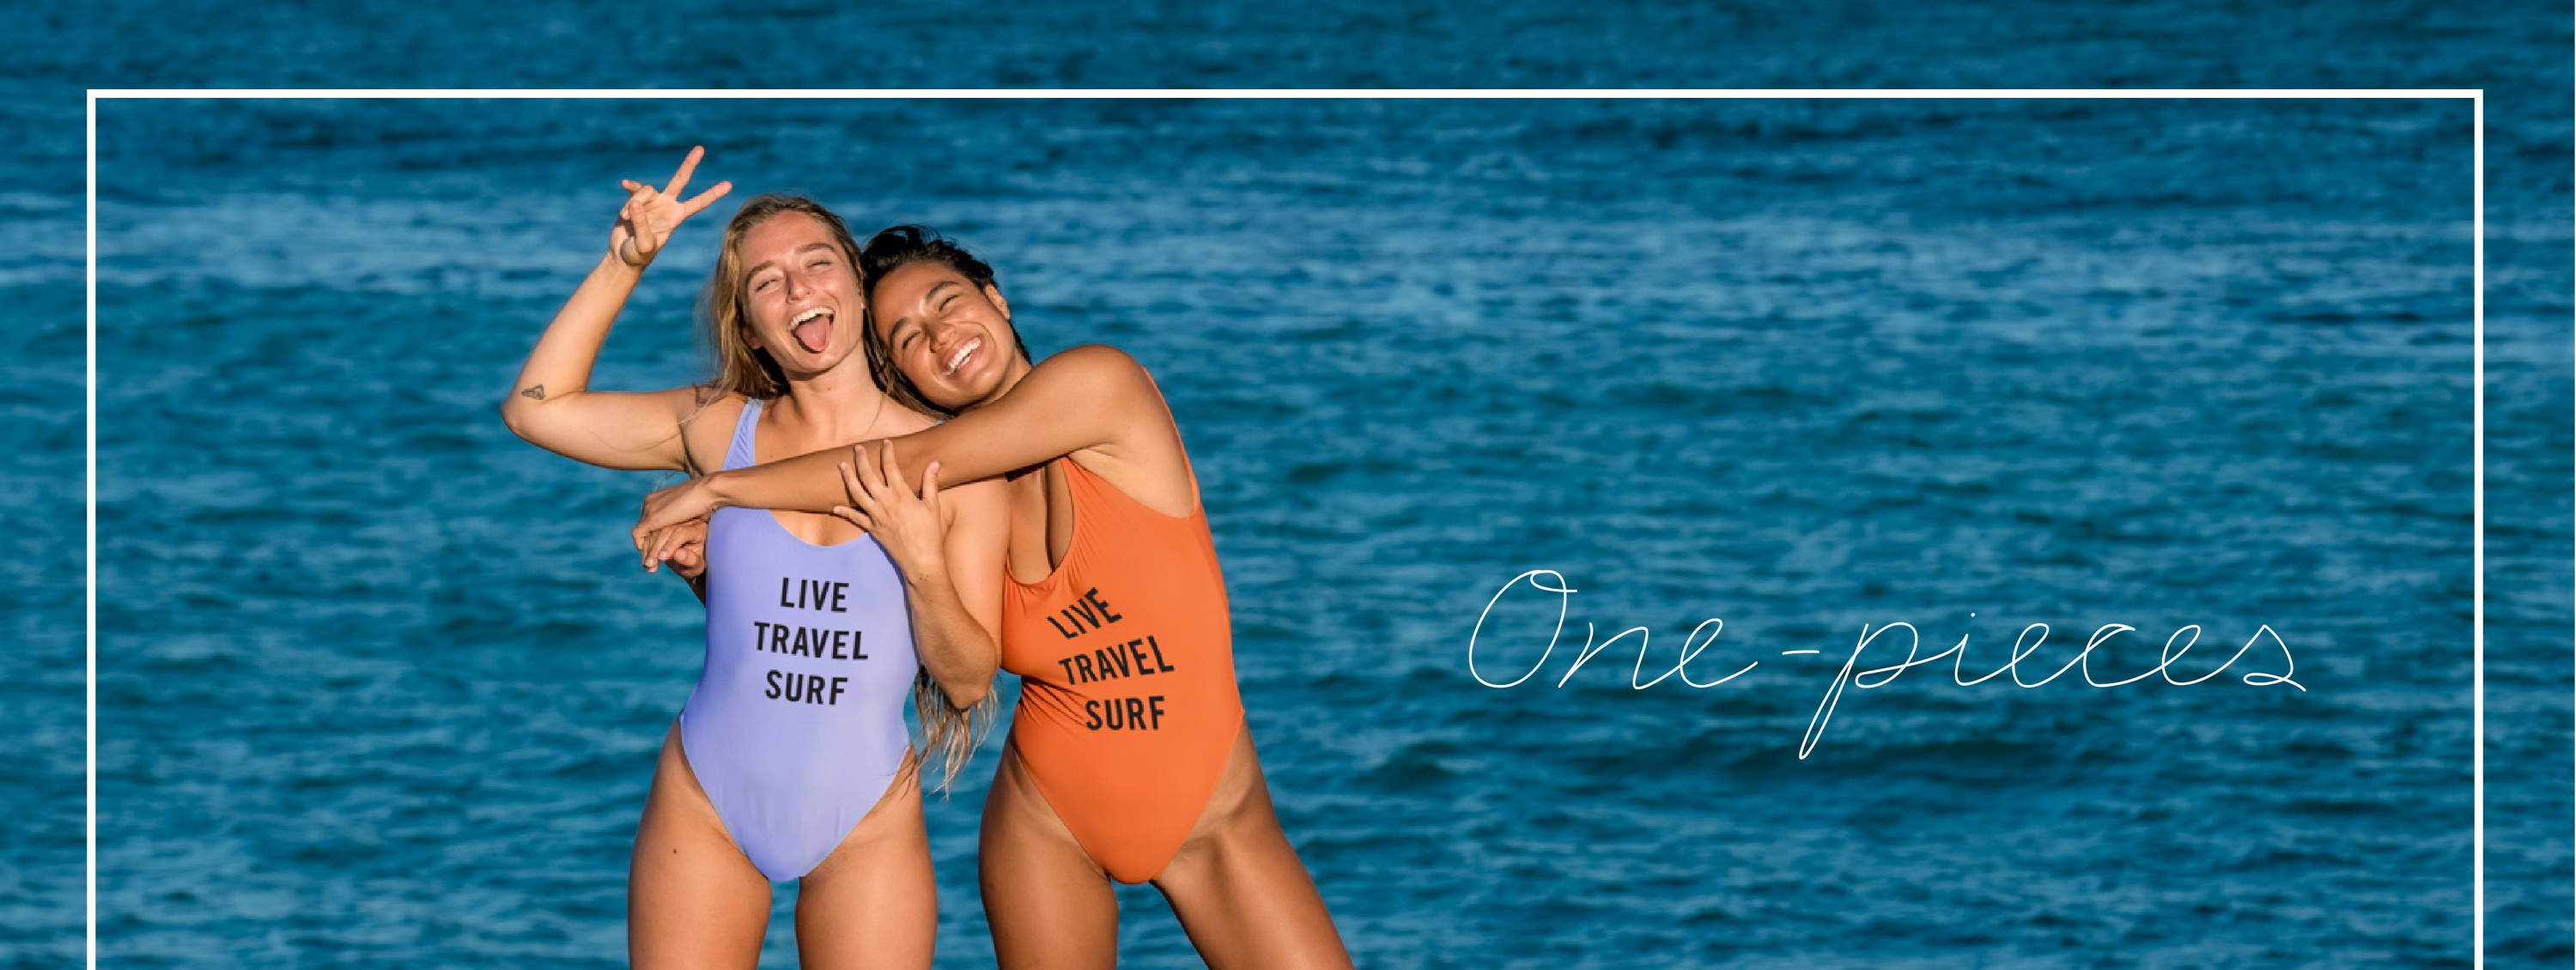 Shop our ONE-PIECES collection!